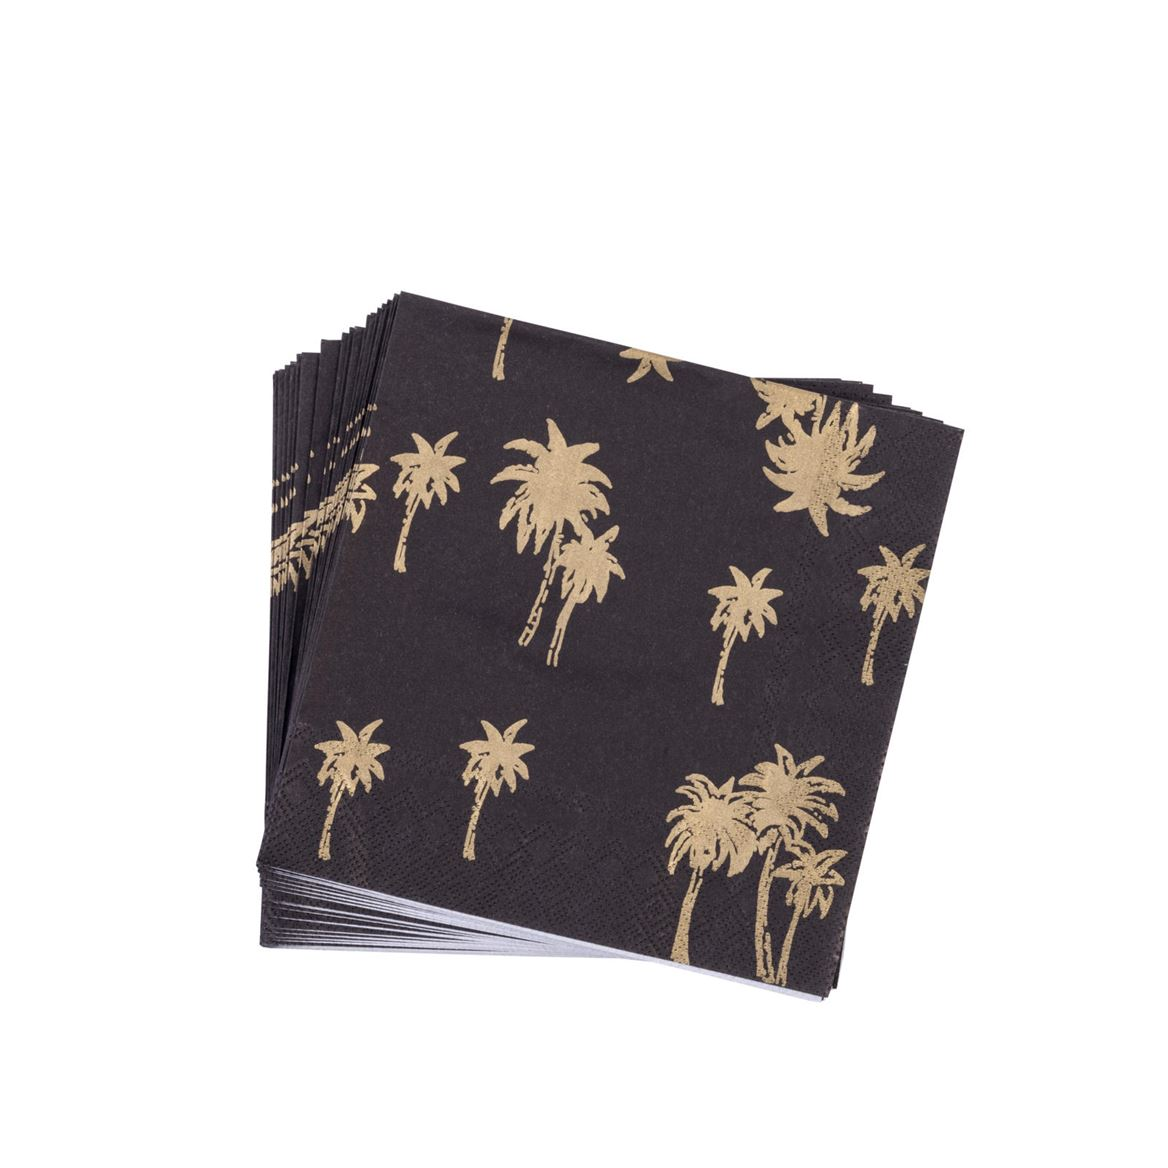 GOLD PALM Set de 20 serviettes noir, doré Larg. 33 x Long. 33 cm_gold-palm-set-de-20-serviettes-noir,-doré-larg--33-x-long--33-cm